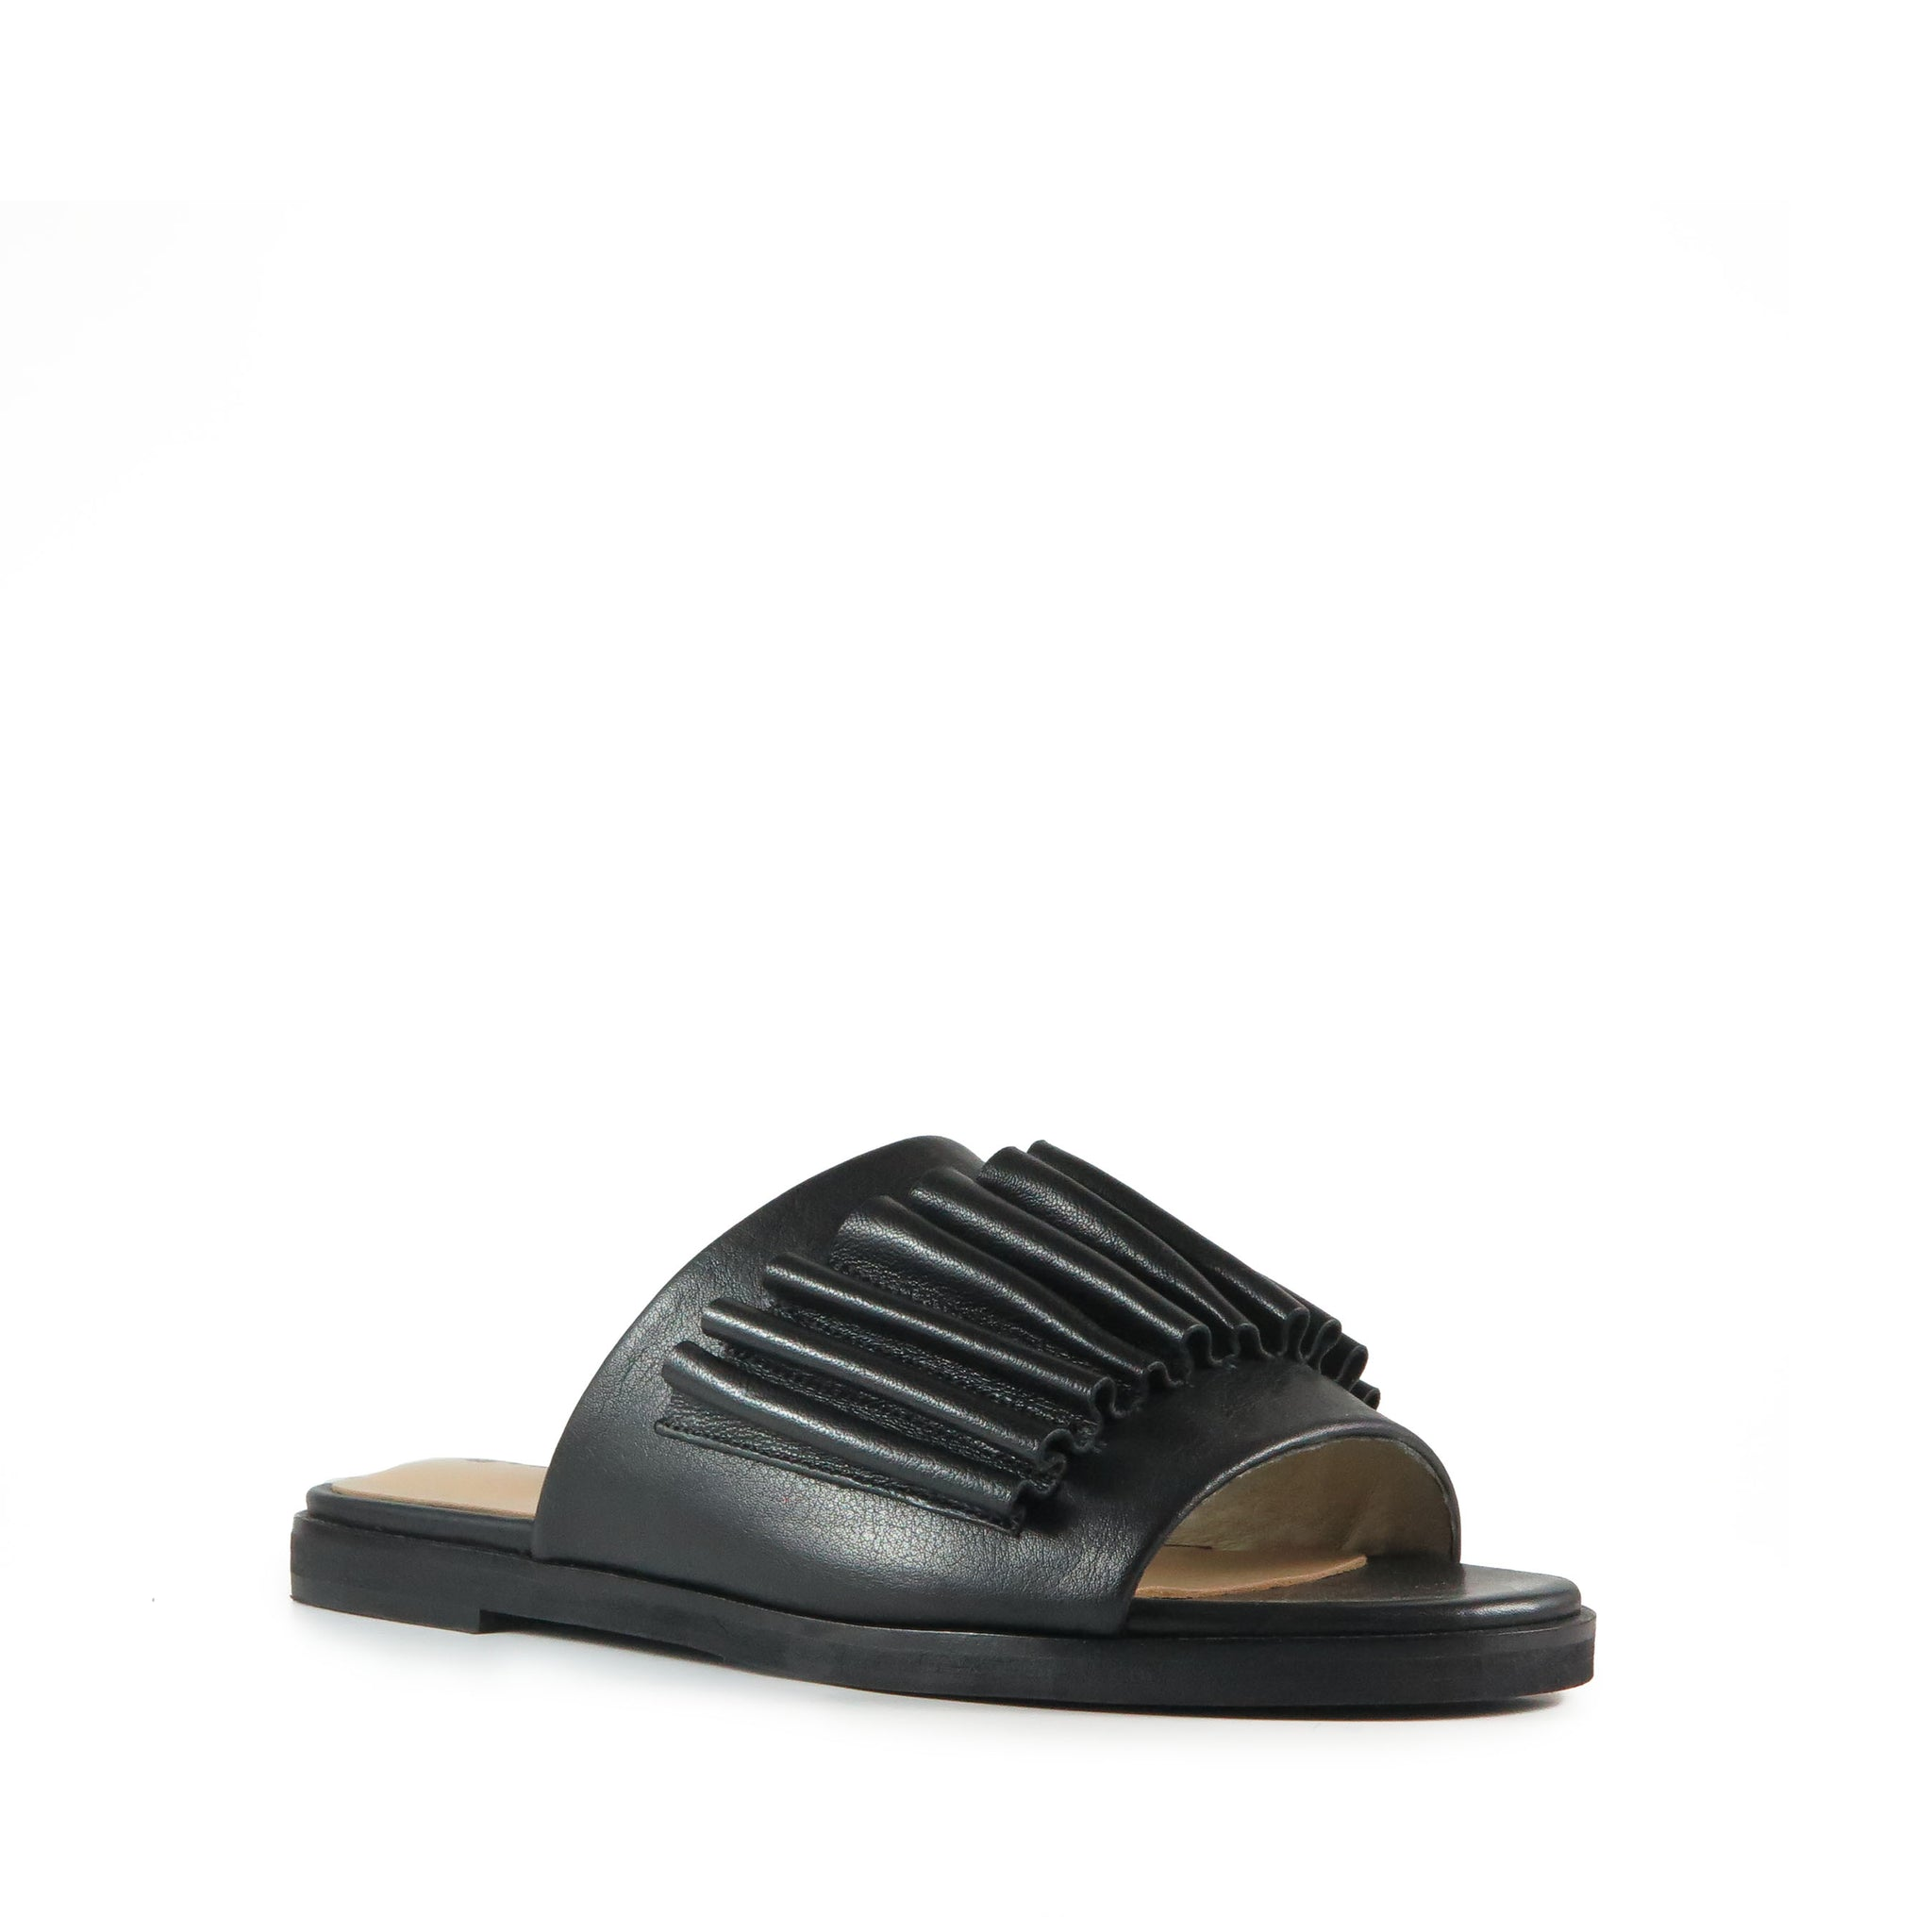 Gentle, black leather slide, gathered leather detail, Chaos & Harmony, Shibusa, New Zealand fashion